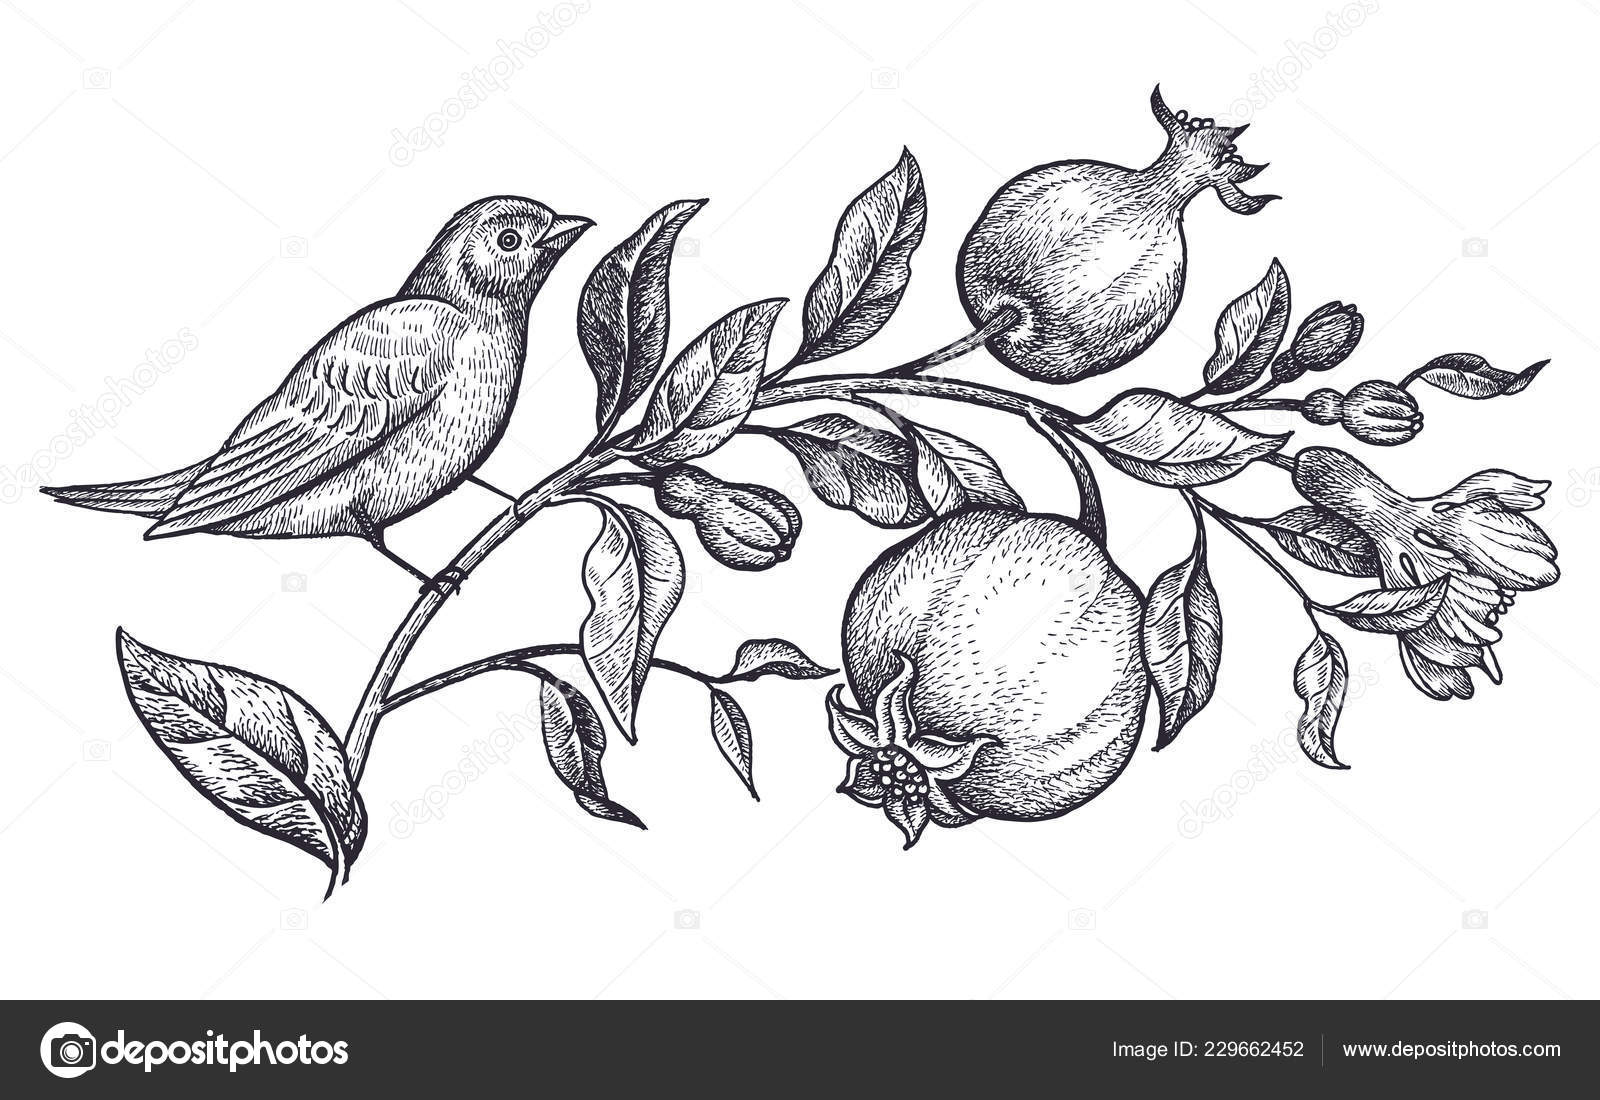 Decoration bird flowers realistic hand drawing nightingale branch pomegranate isolated stock vector